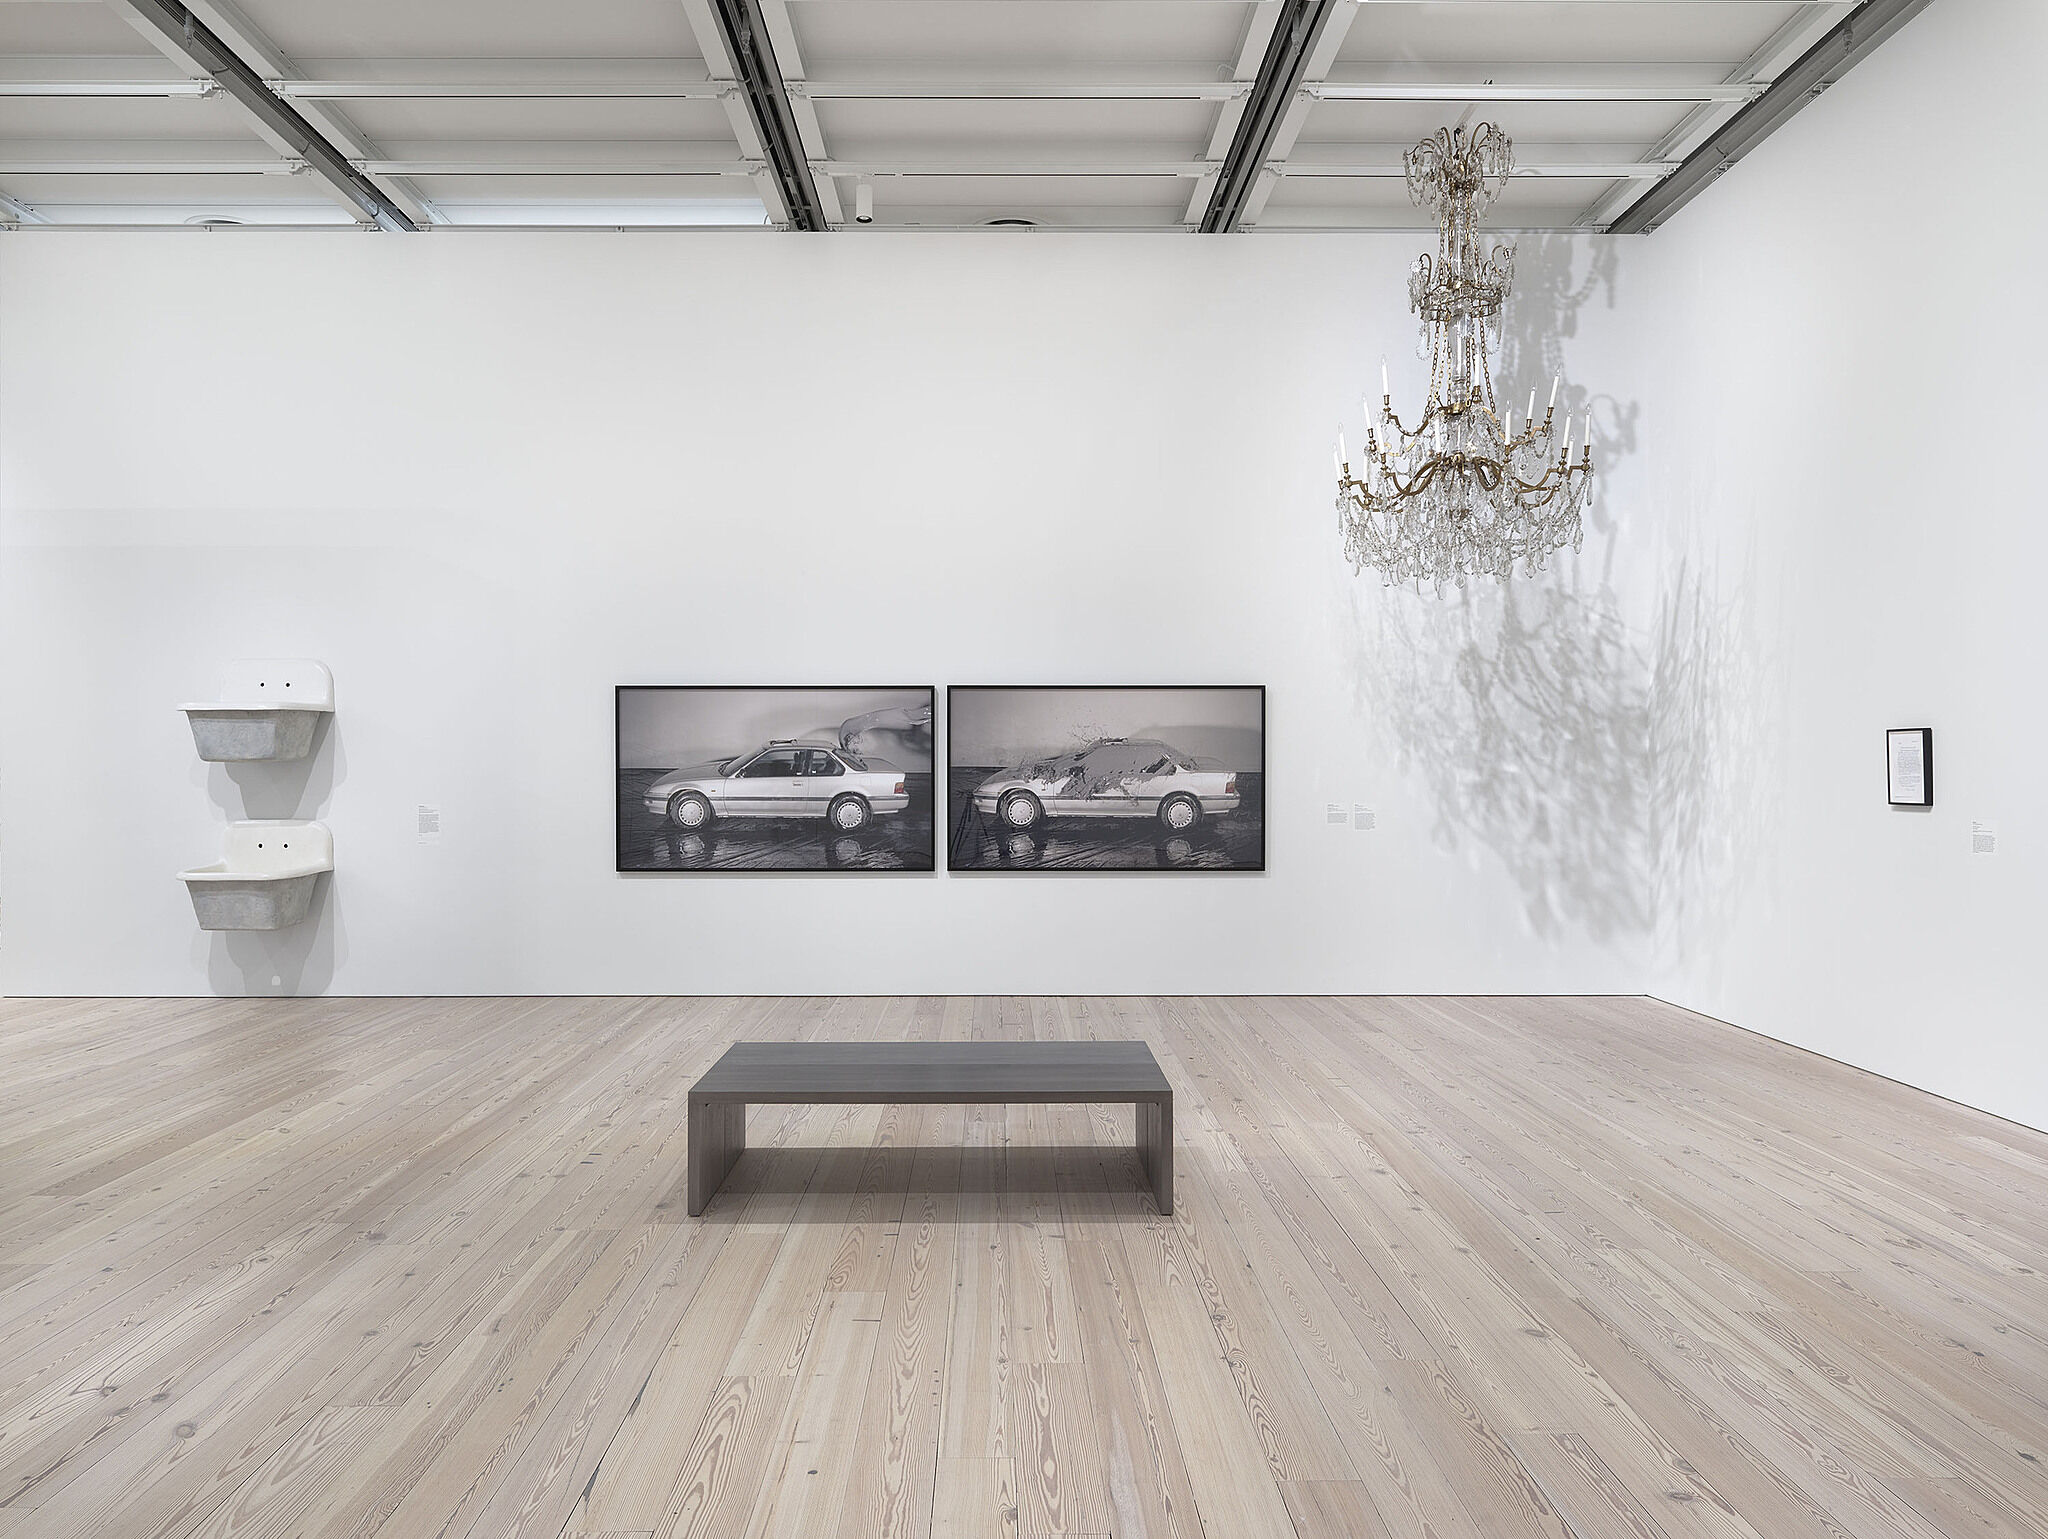 Art installation with a photos of cars, a sculpture in the right hand corner and two sinks on the wall.